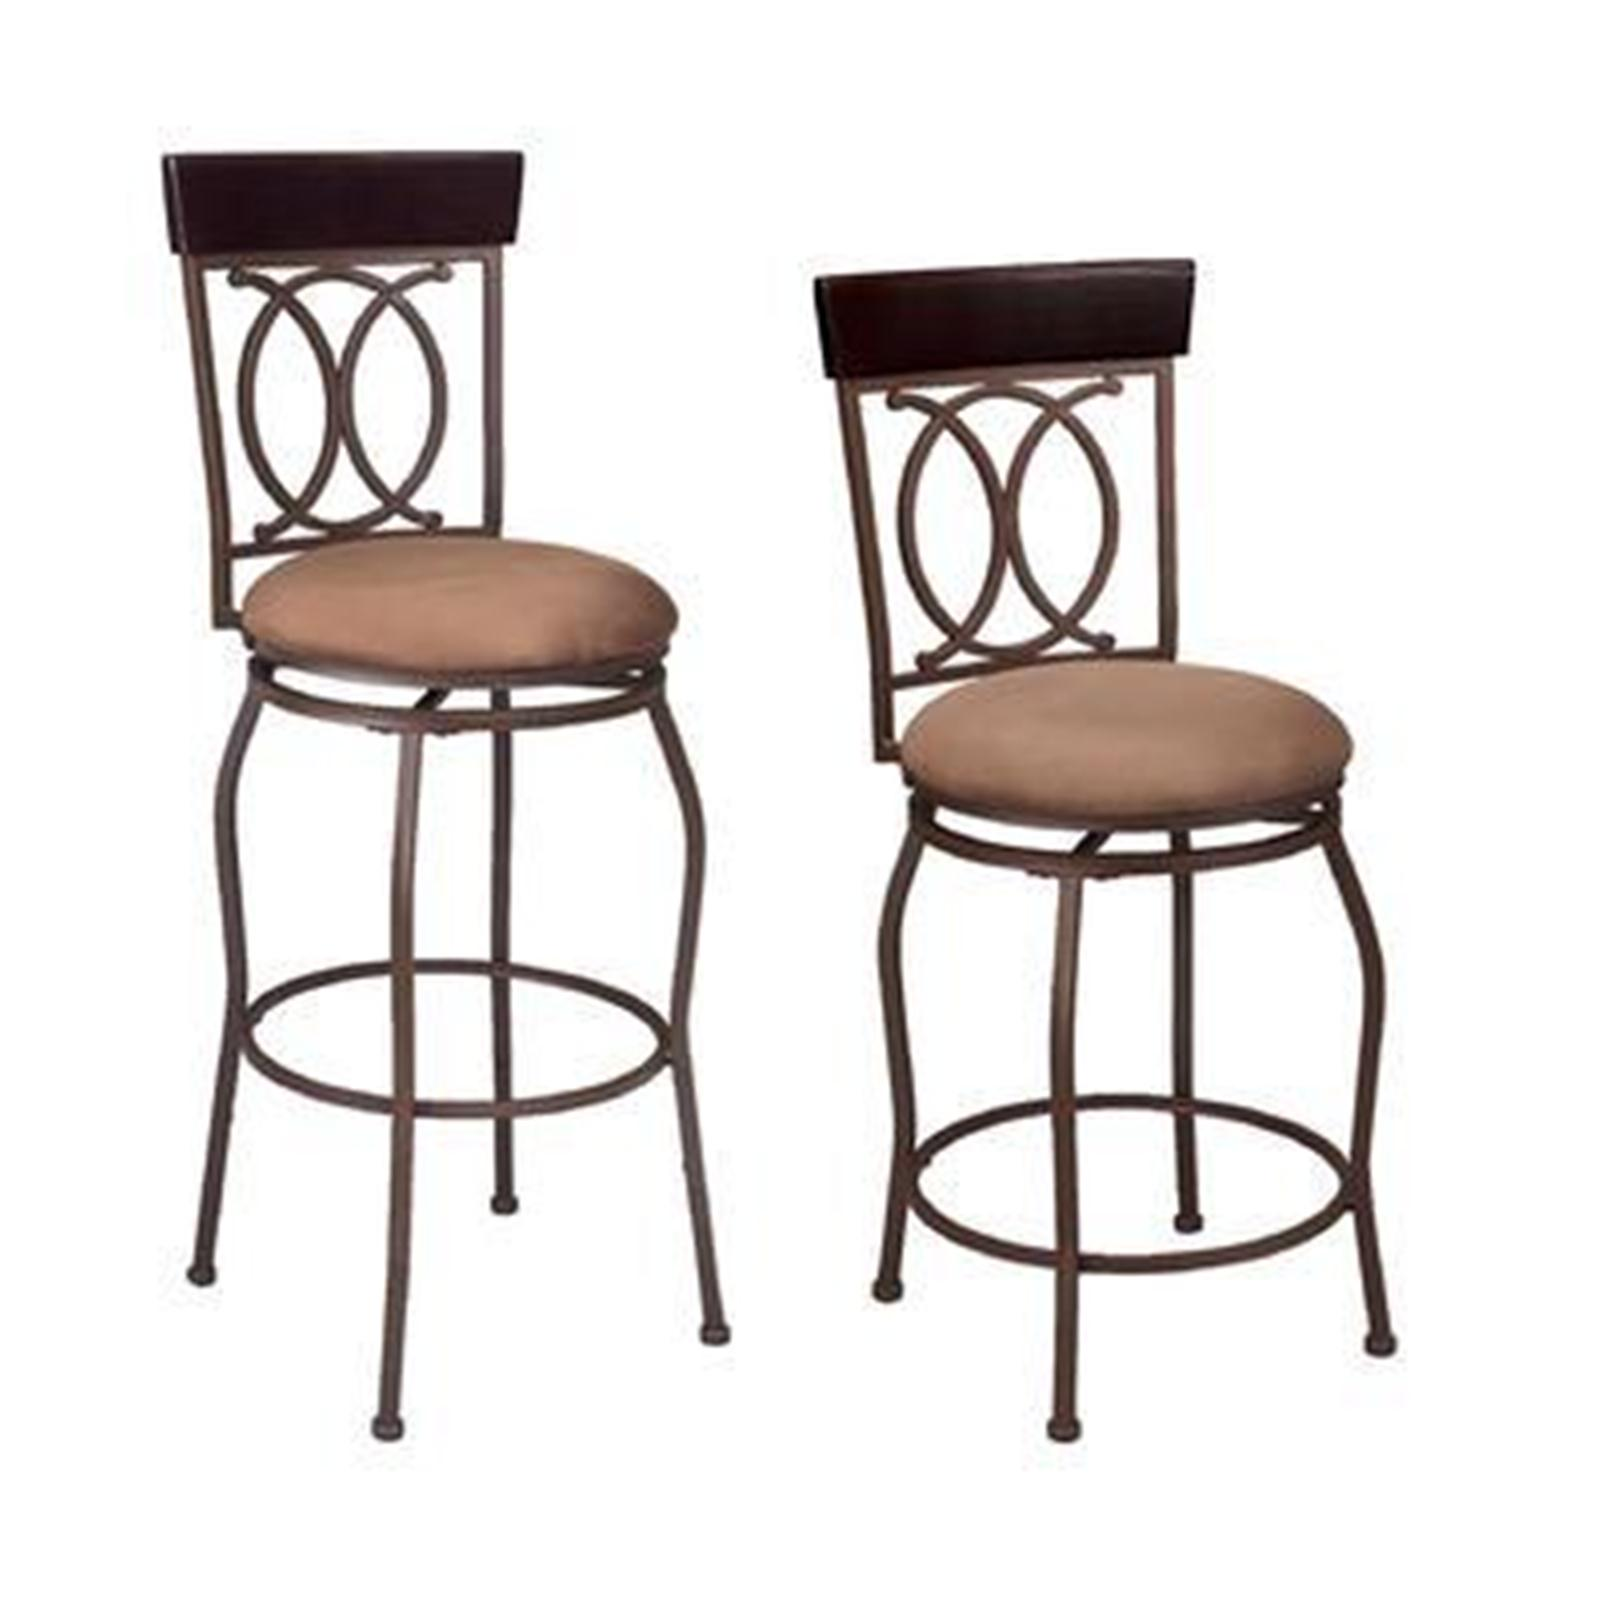 bar stool chair extenders poker card table and chairs set essential home olivia furniture